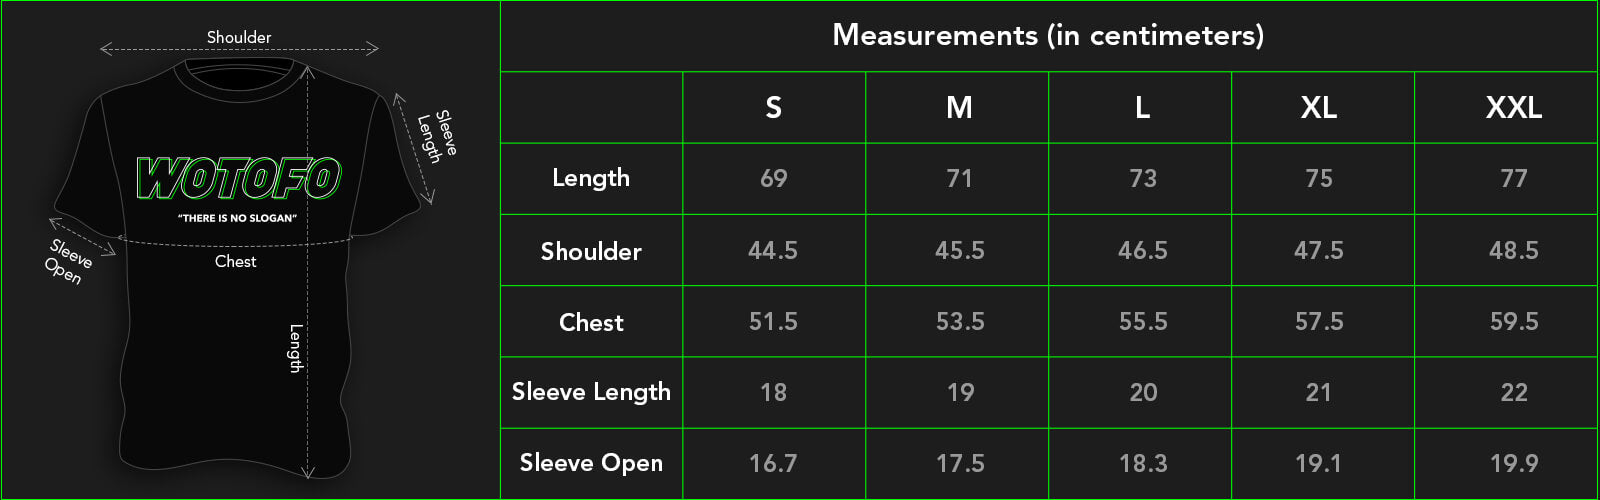 Vape T-Shirt Size Guide in centimeters